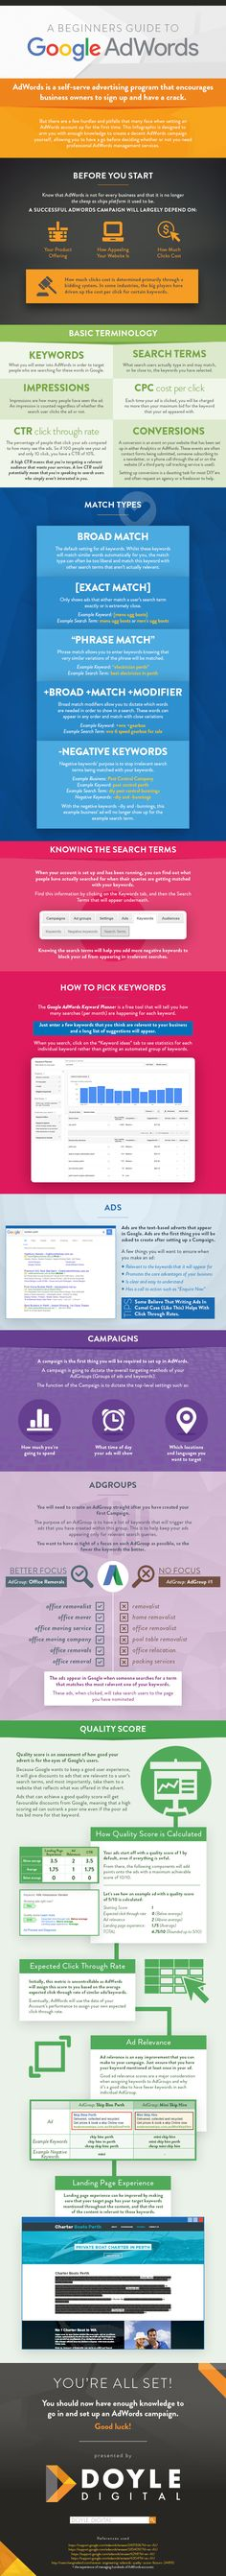 AdWords Infographic – A Beginner's Guide